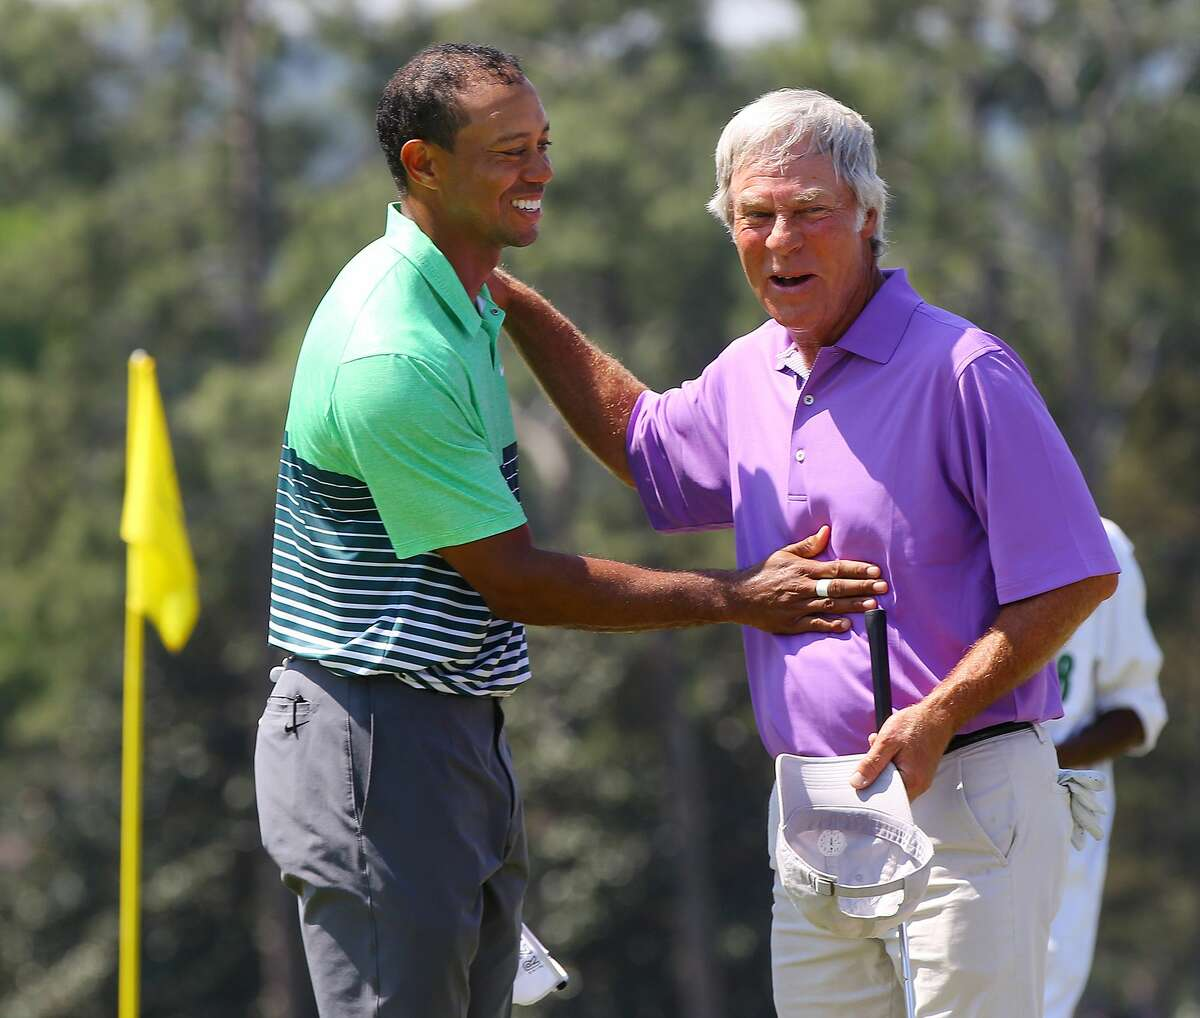 Tiger Woods, left, and Ben Crenshaw embrace on the 18th green as they finish a practice round for the Masters on Wednesday in Augusta, Ga.